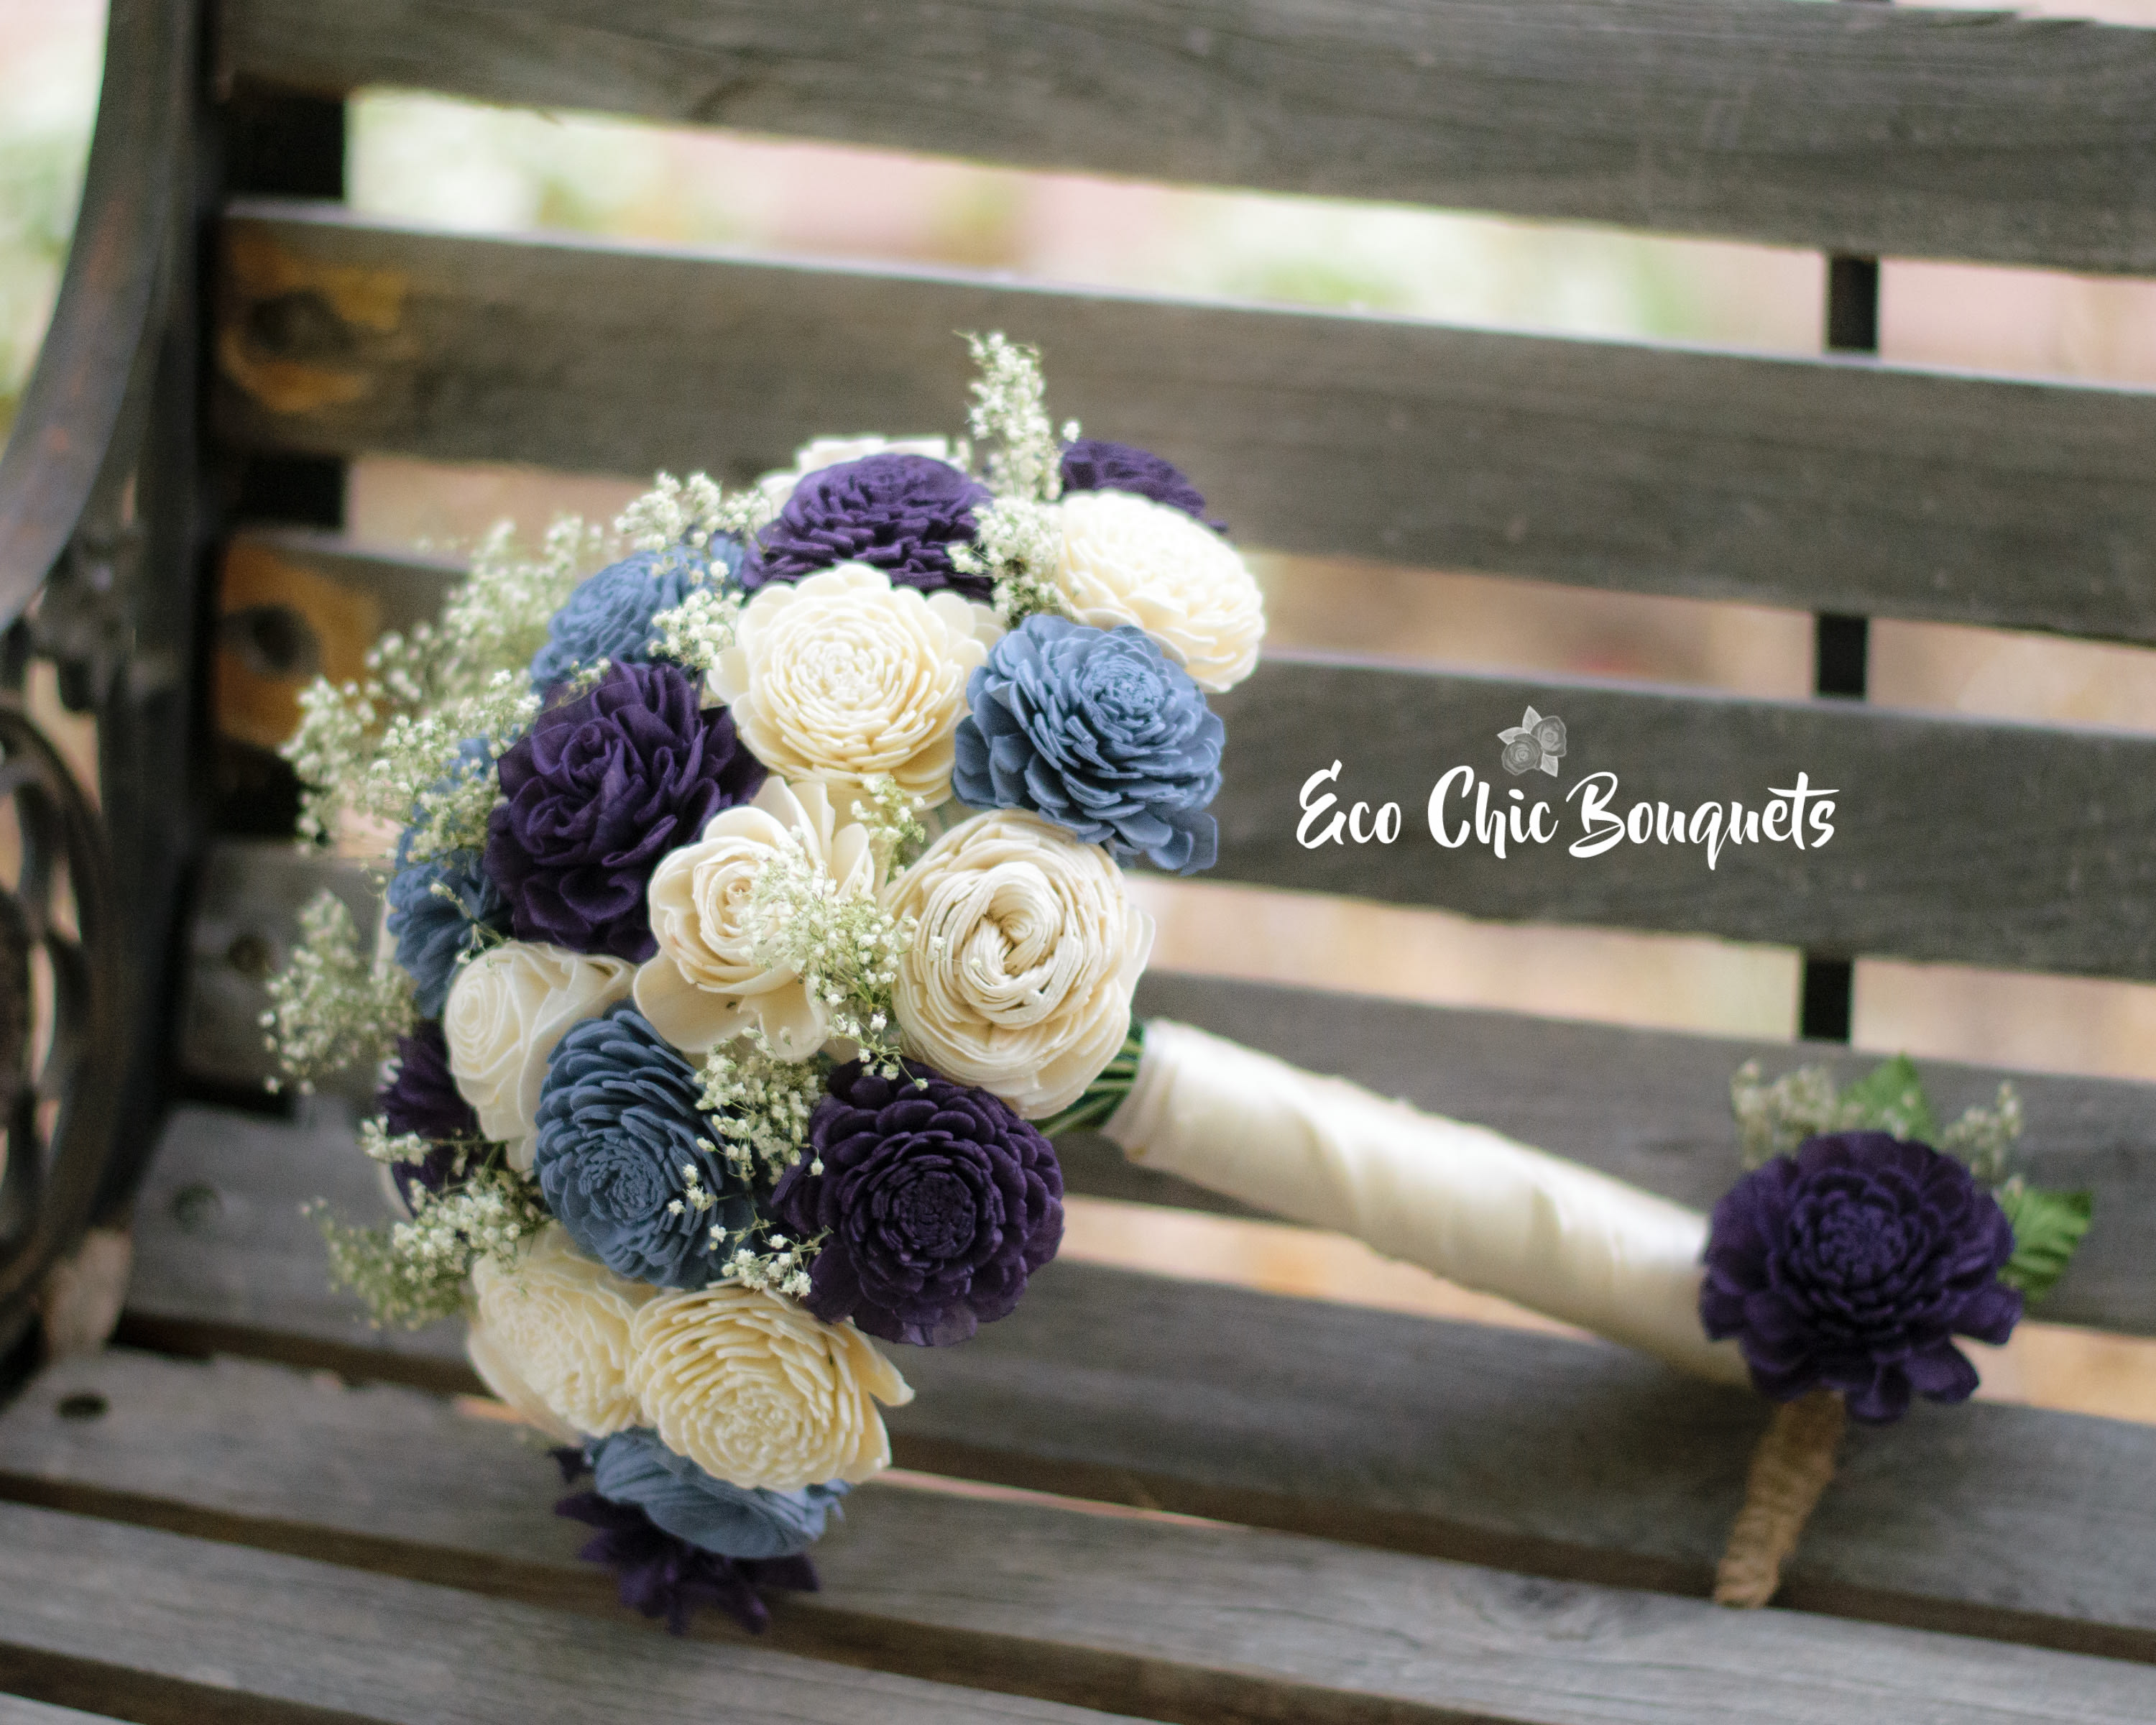 eco chic bouquets - wedding bouquet & boutonniere pair in colorado springs,  co | bloomtastic flower shop